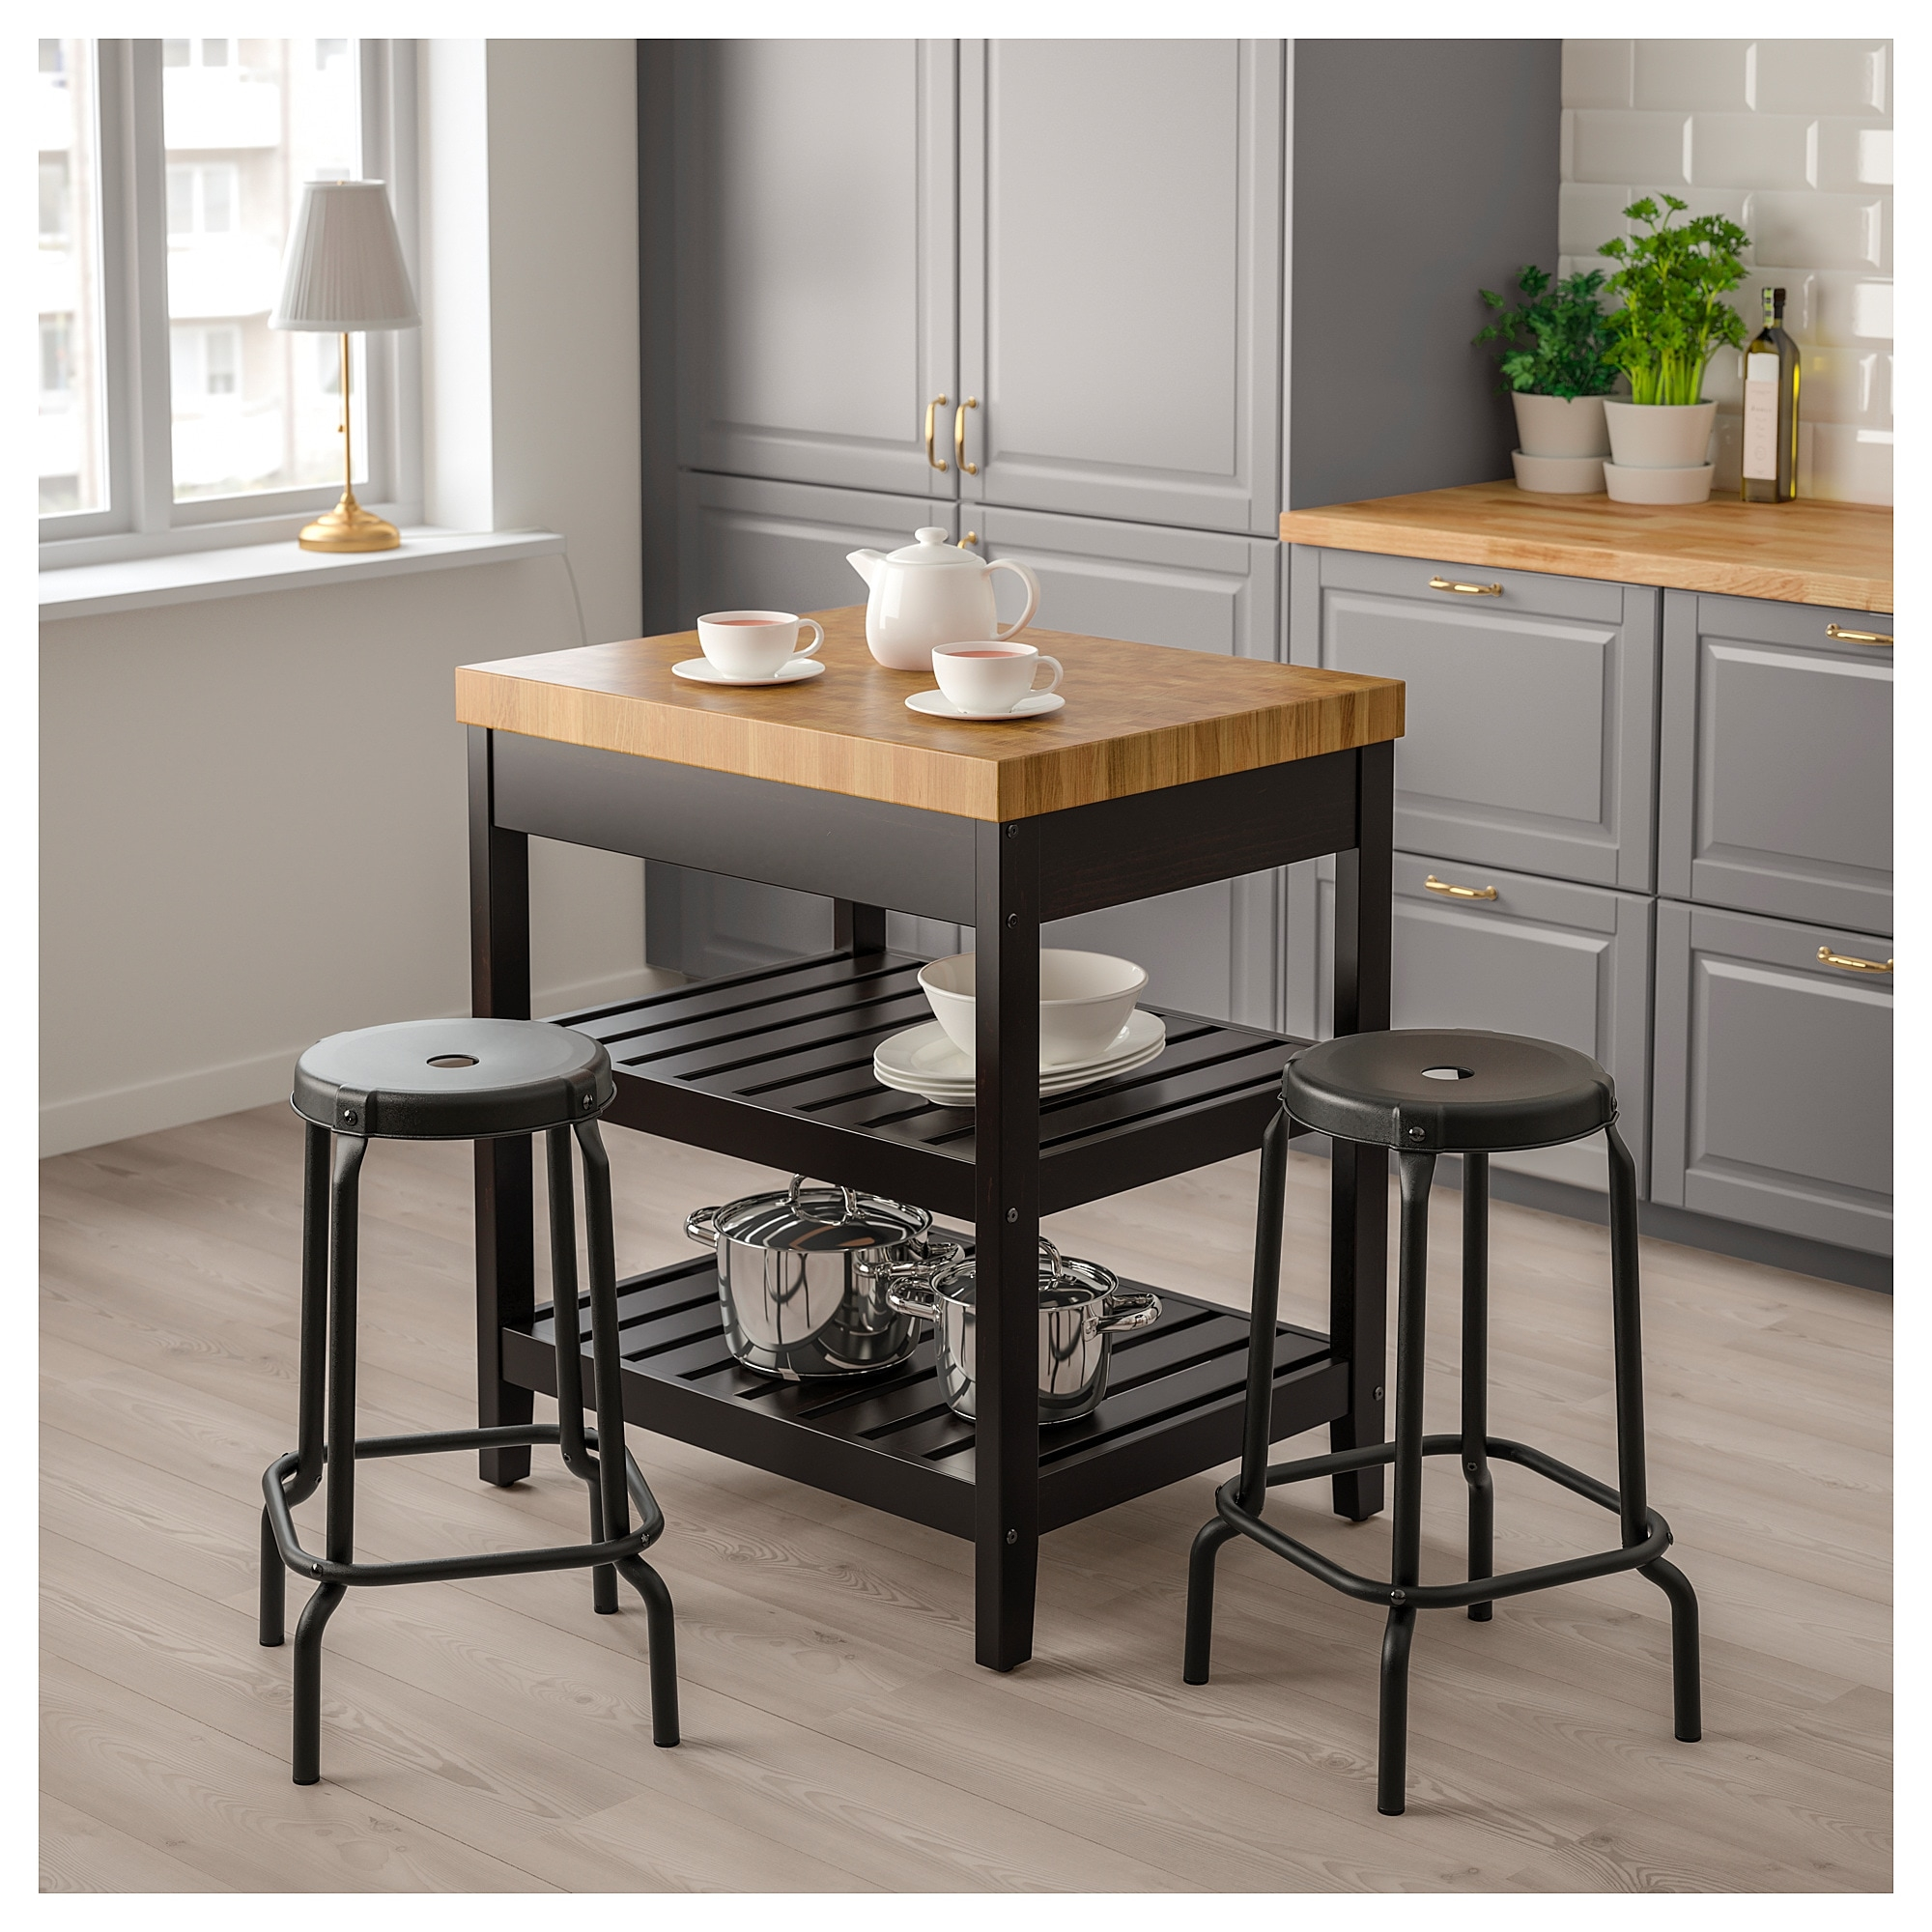 ikea islands kitchen 50 ikea kitchen islands you ll love in 2020 visual hunt 4345